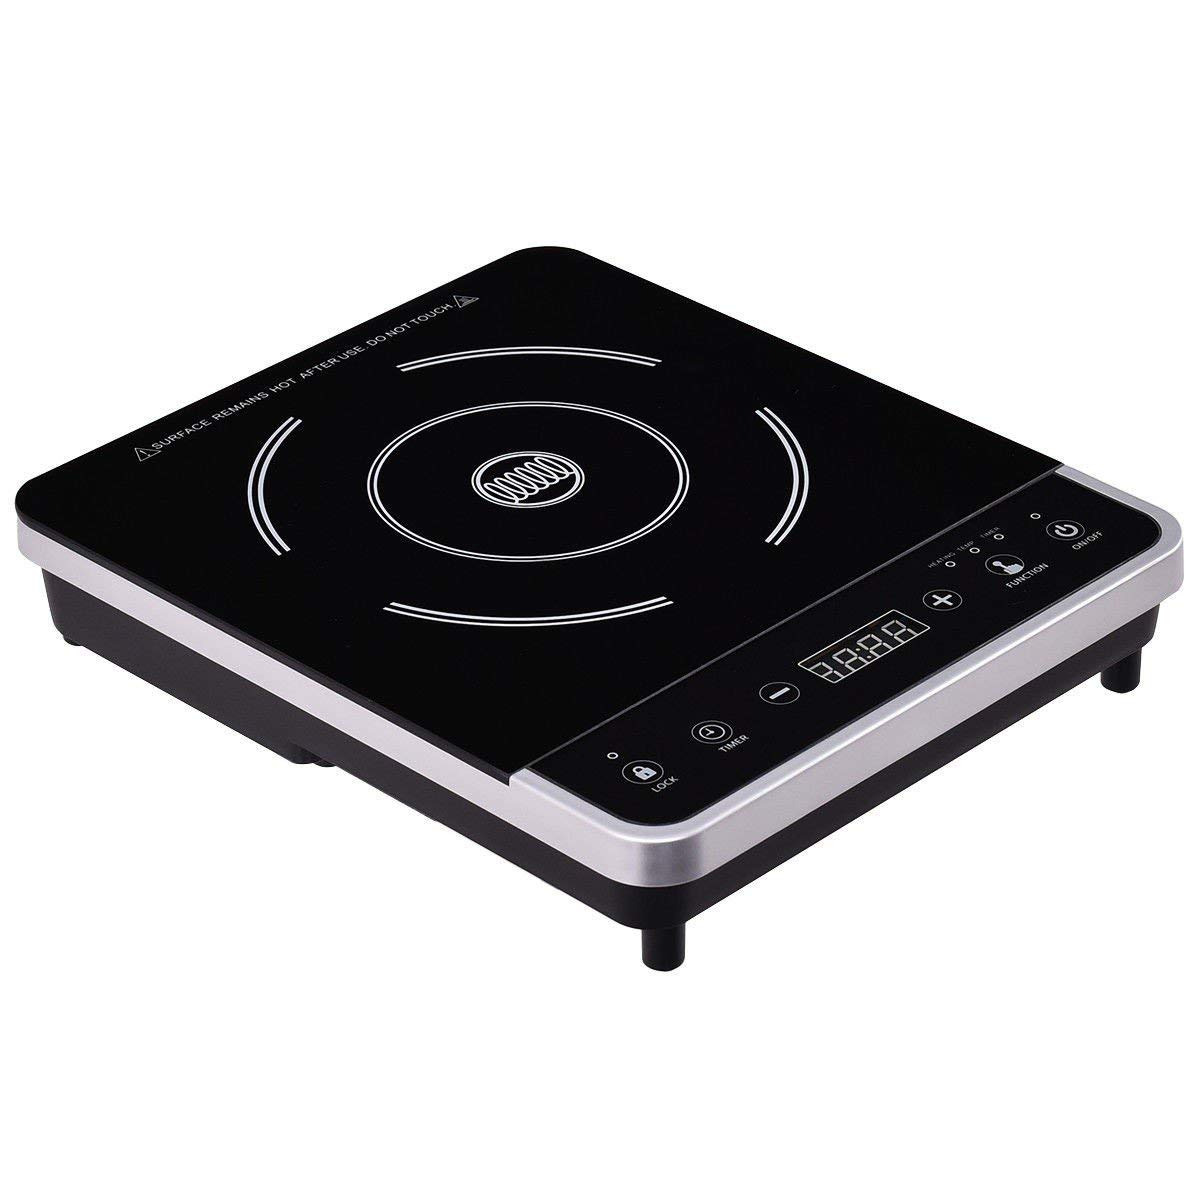 Electric Portable Induction Cooker Single Burner Digital Hot Plate Cooktop Countertop Stove Energy Effeciency Top Hot Plate Digital Cook